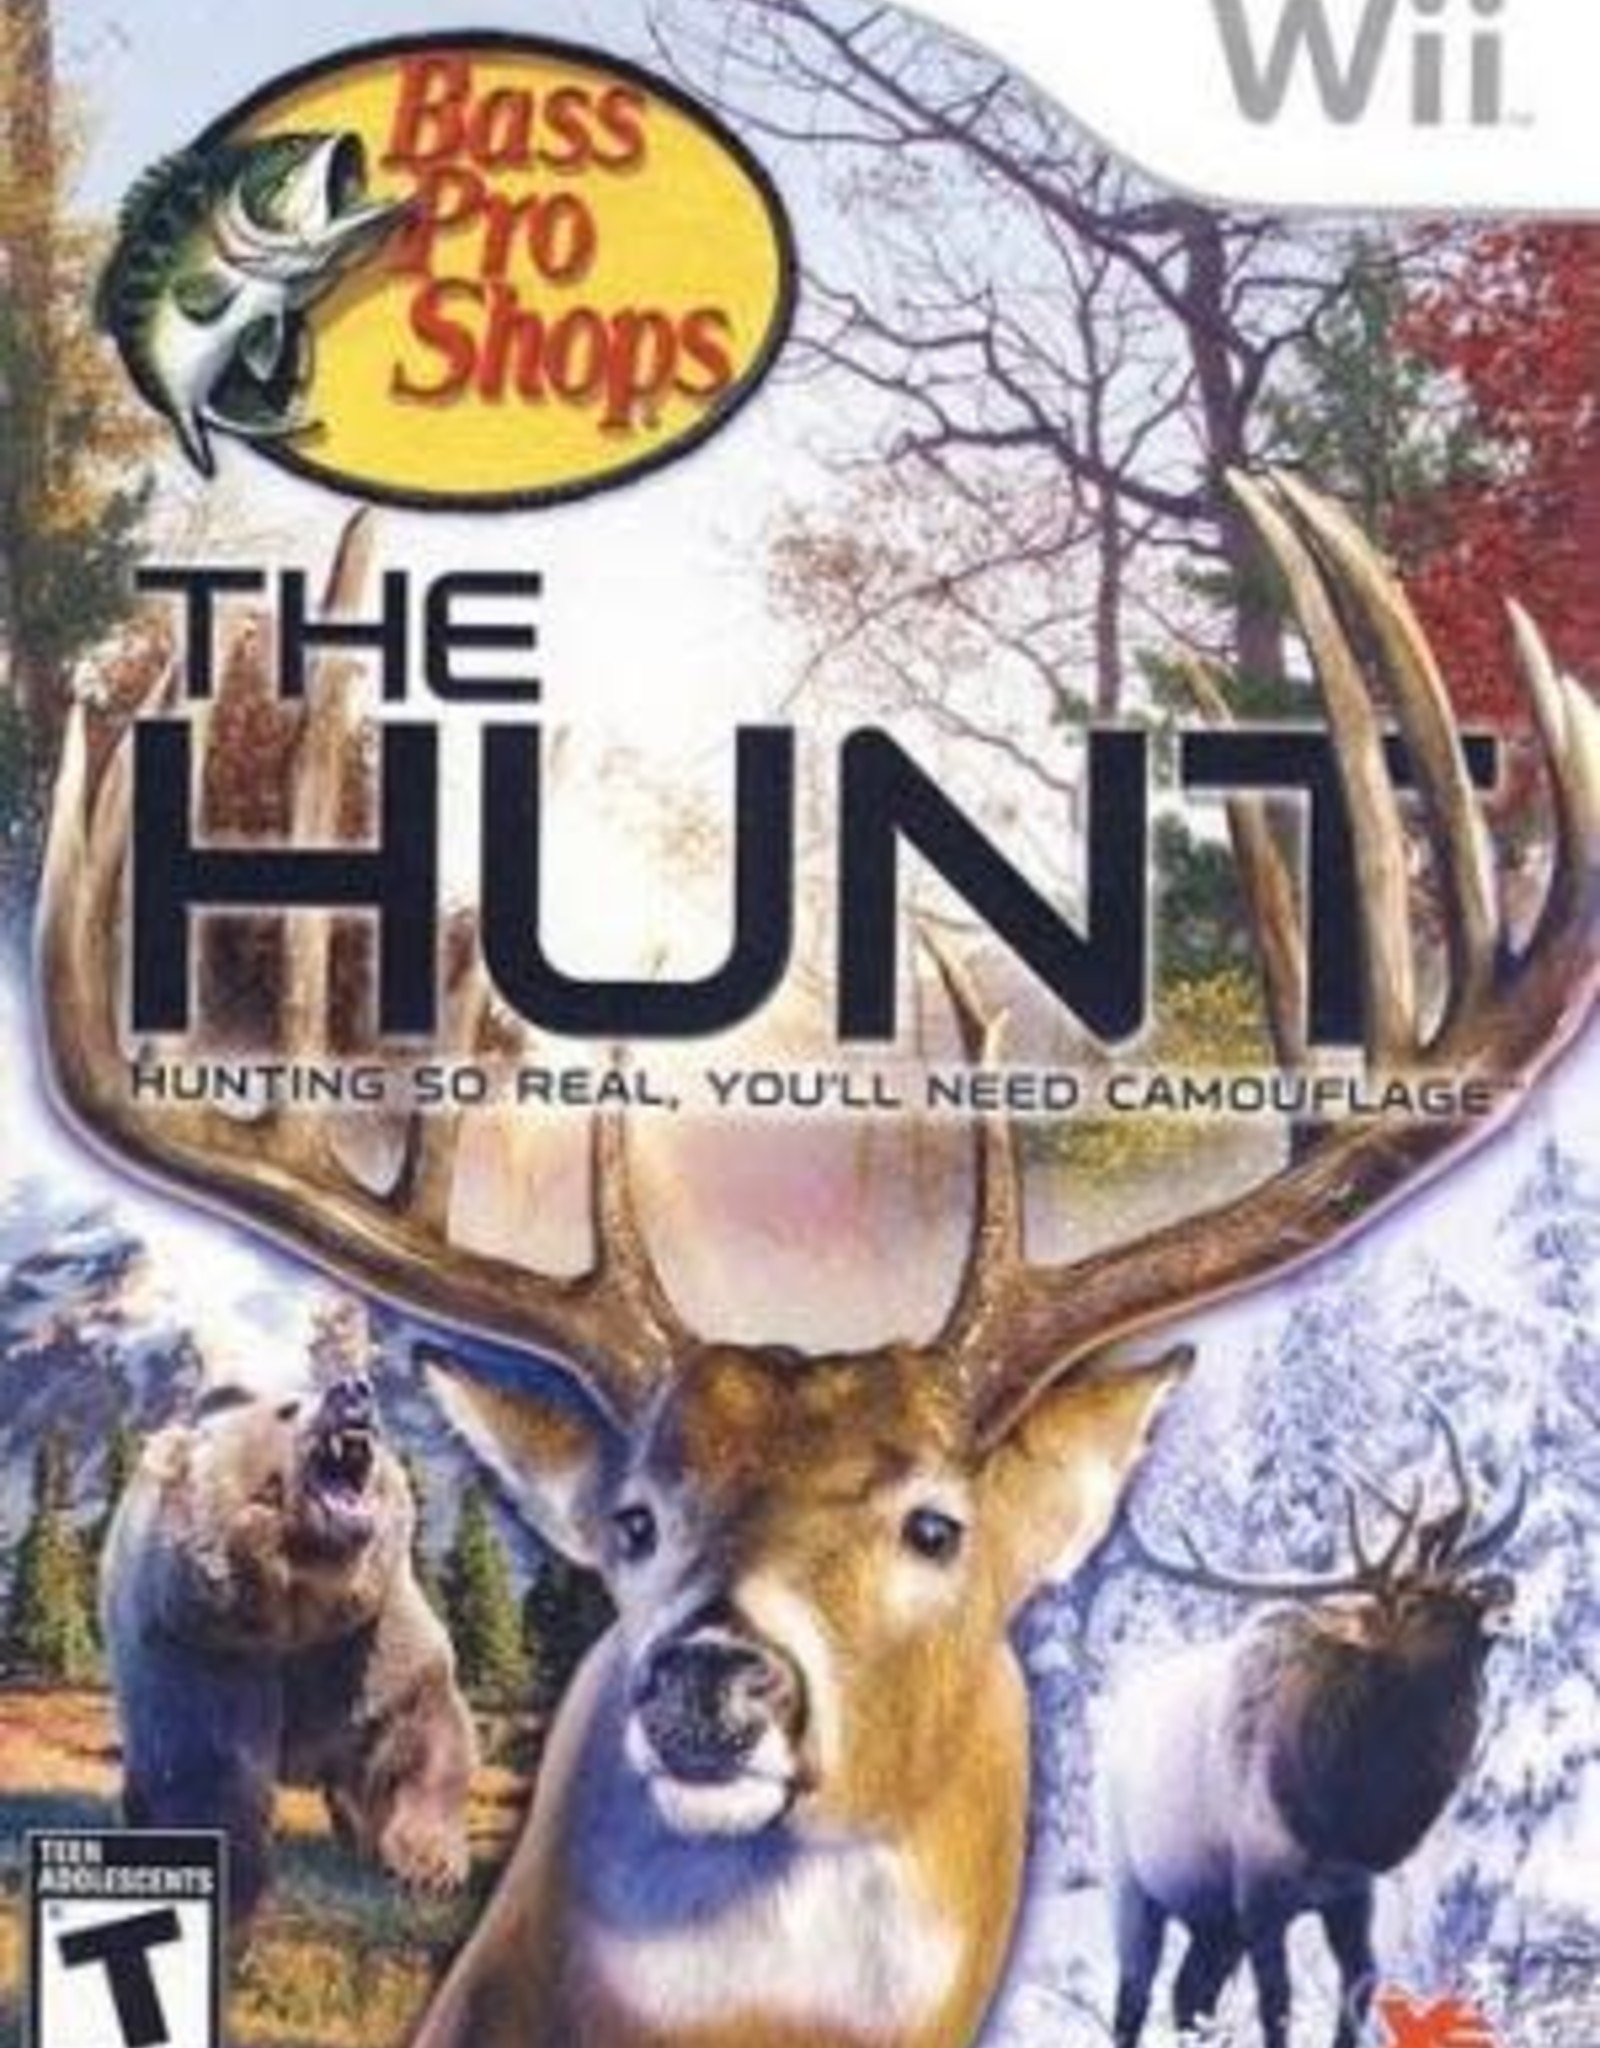 Wii Bass Pro Shops: The Hunt